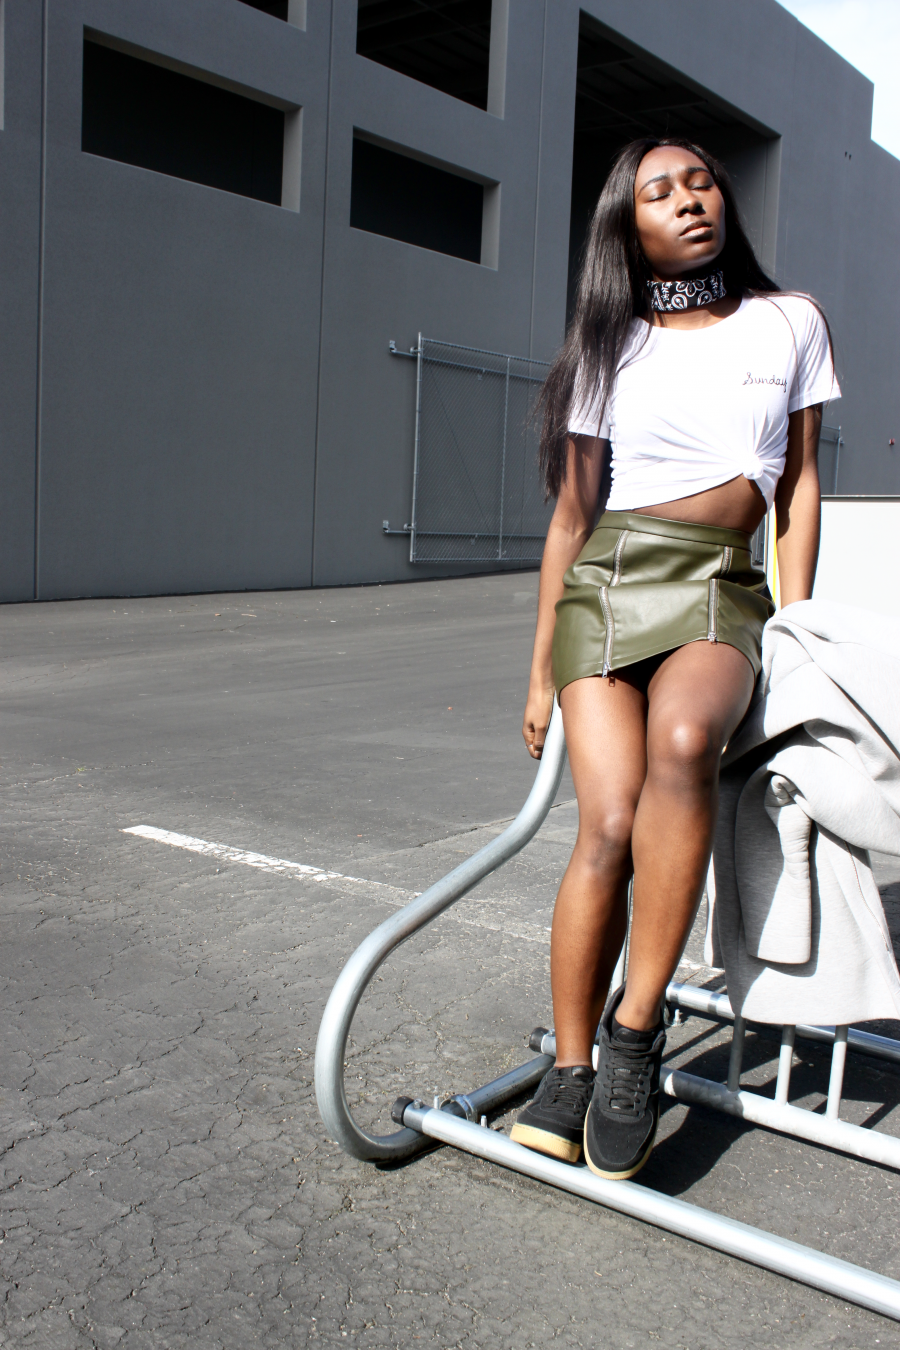 d6414fda96a3 Style & Fashion | Kaki leather mini skirt + minimal graphic tee-shirt +  Nike air Force 1 + grey neoprene jacket + bandana. By Parisian and West  african ...